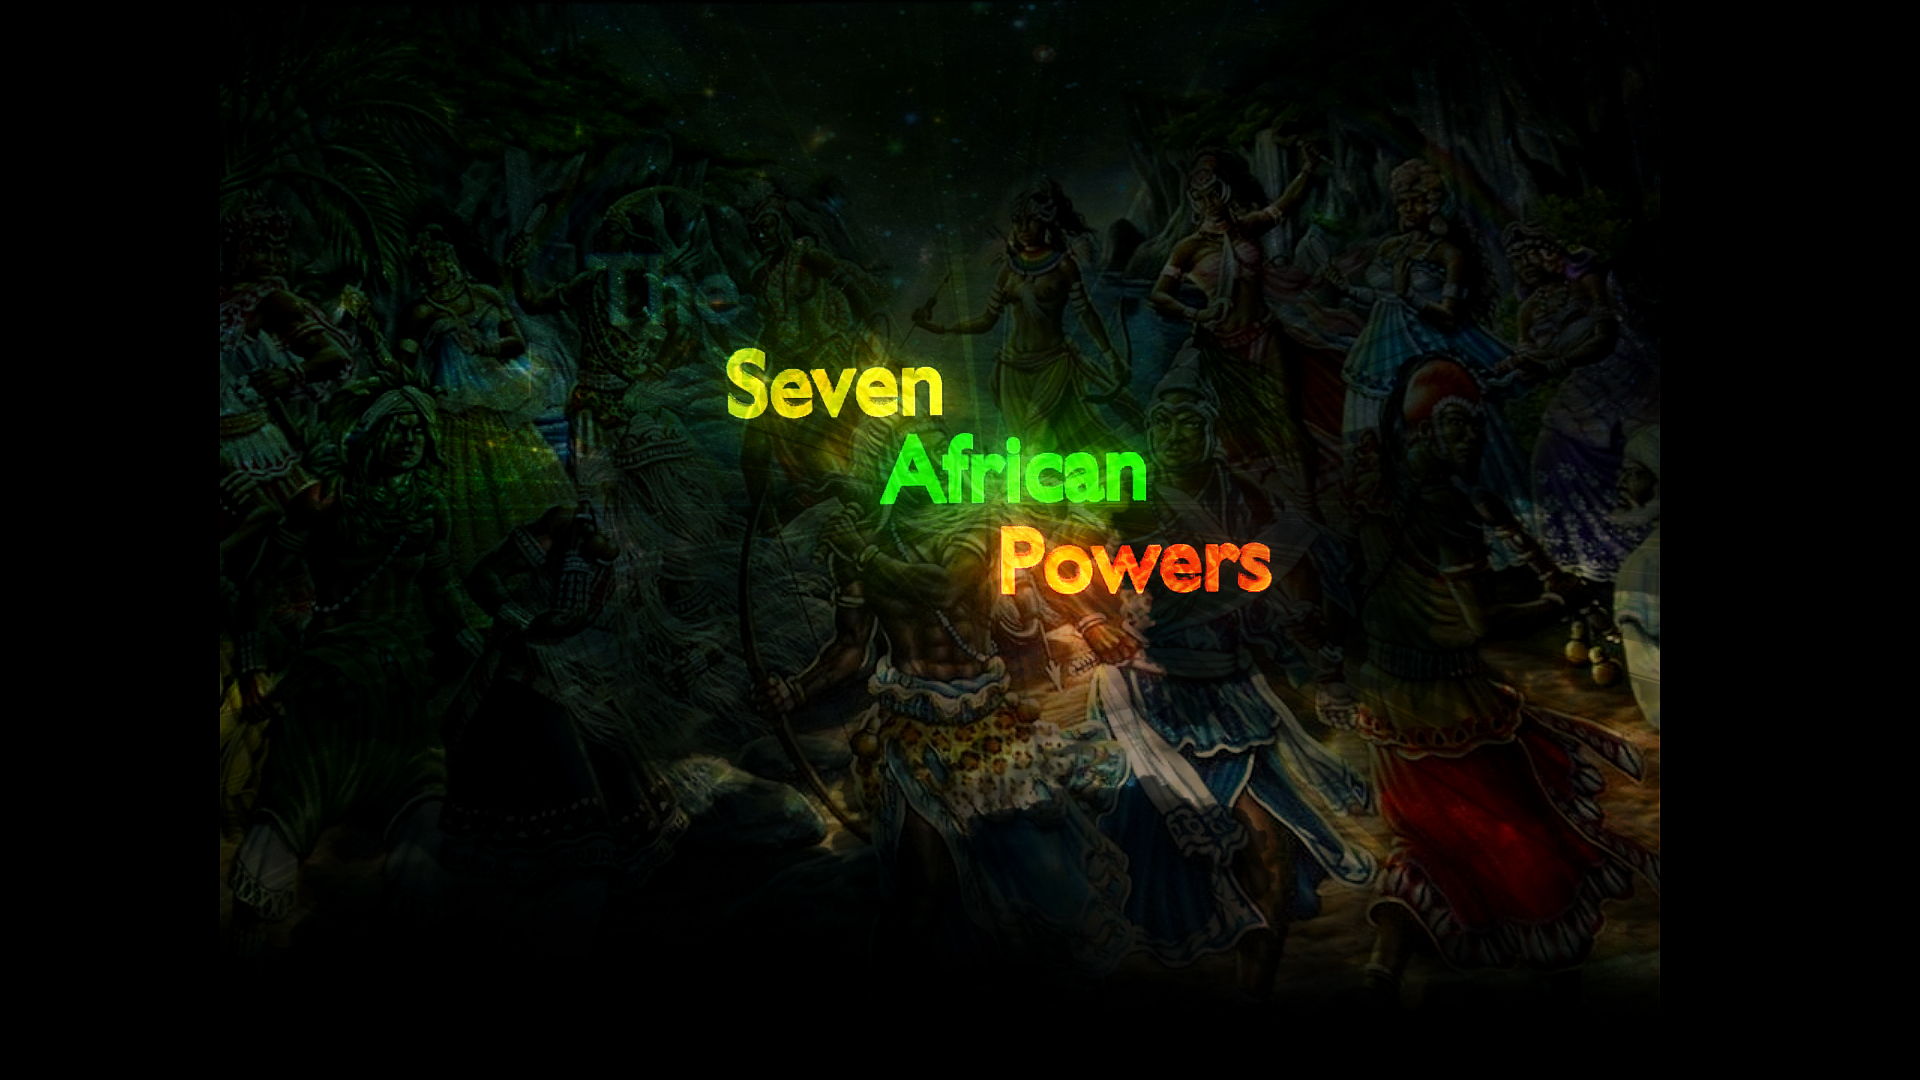 Abysssarians Seven African Powers.jpg